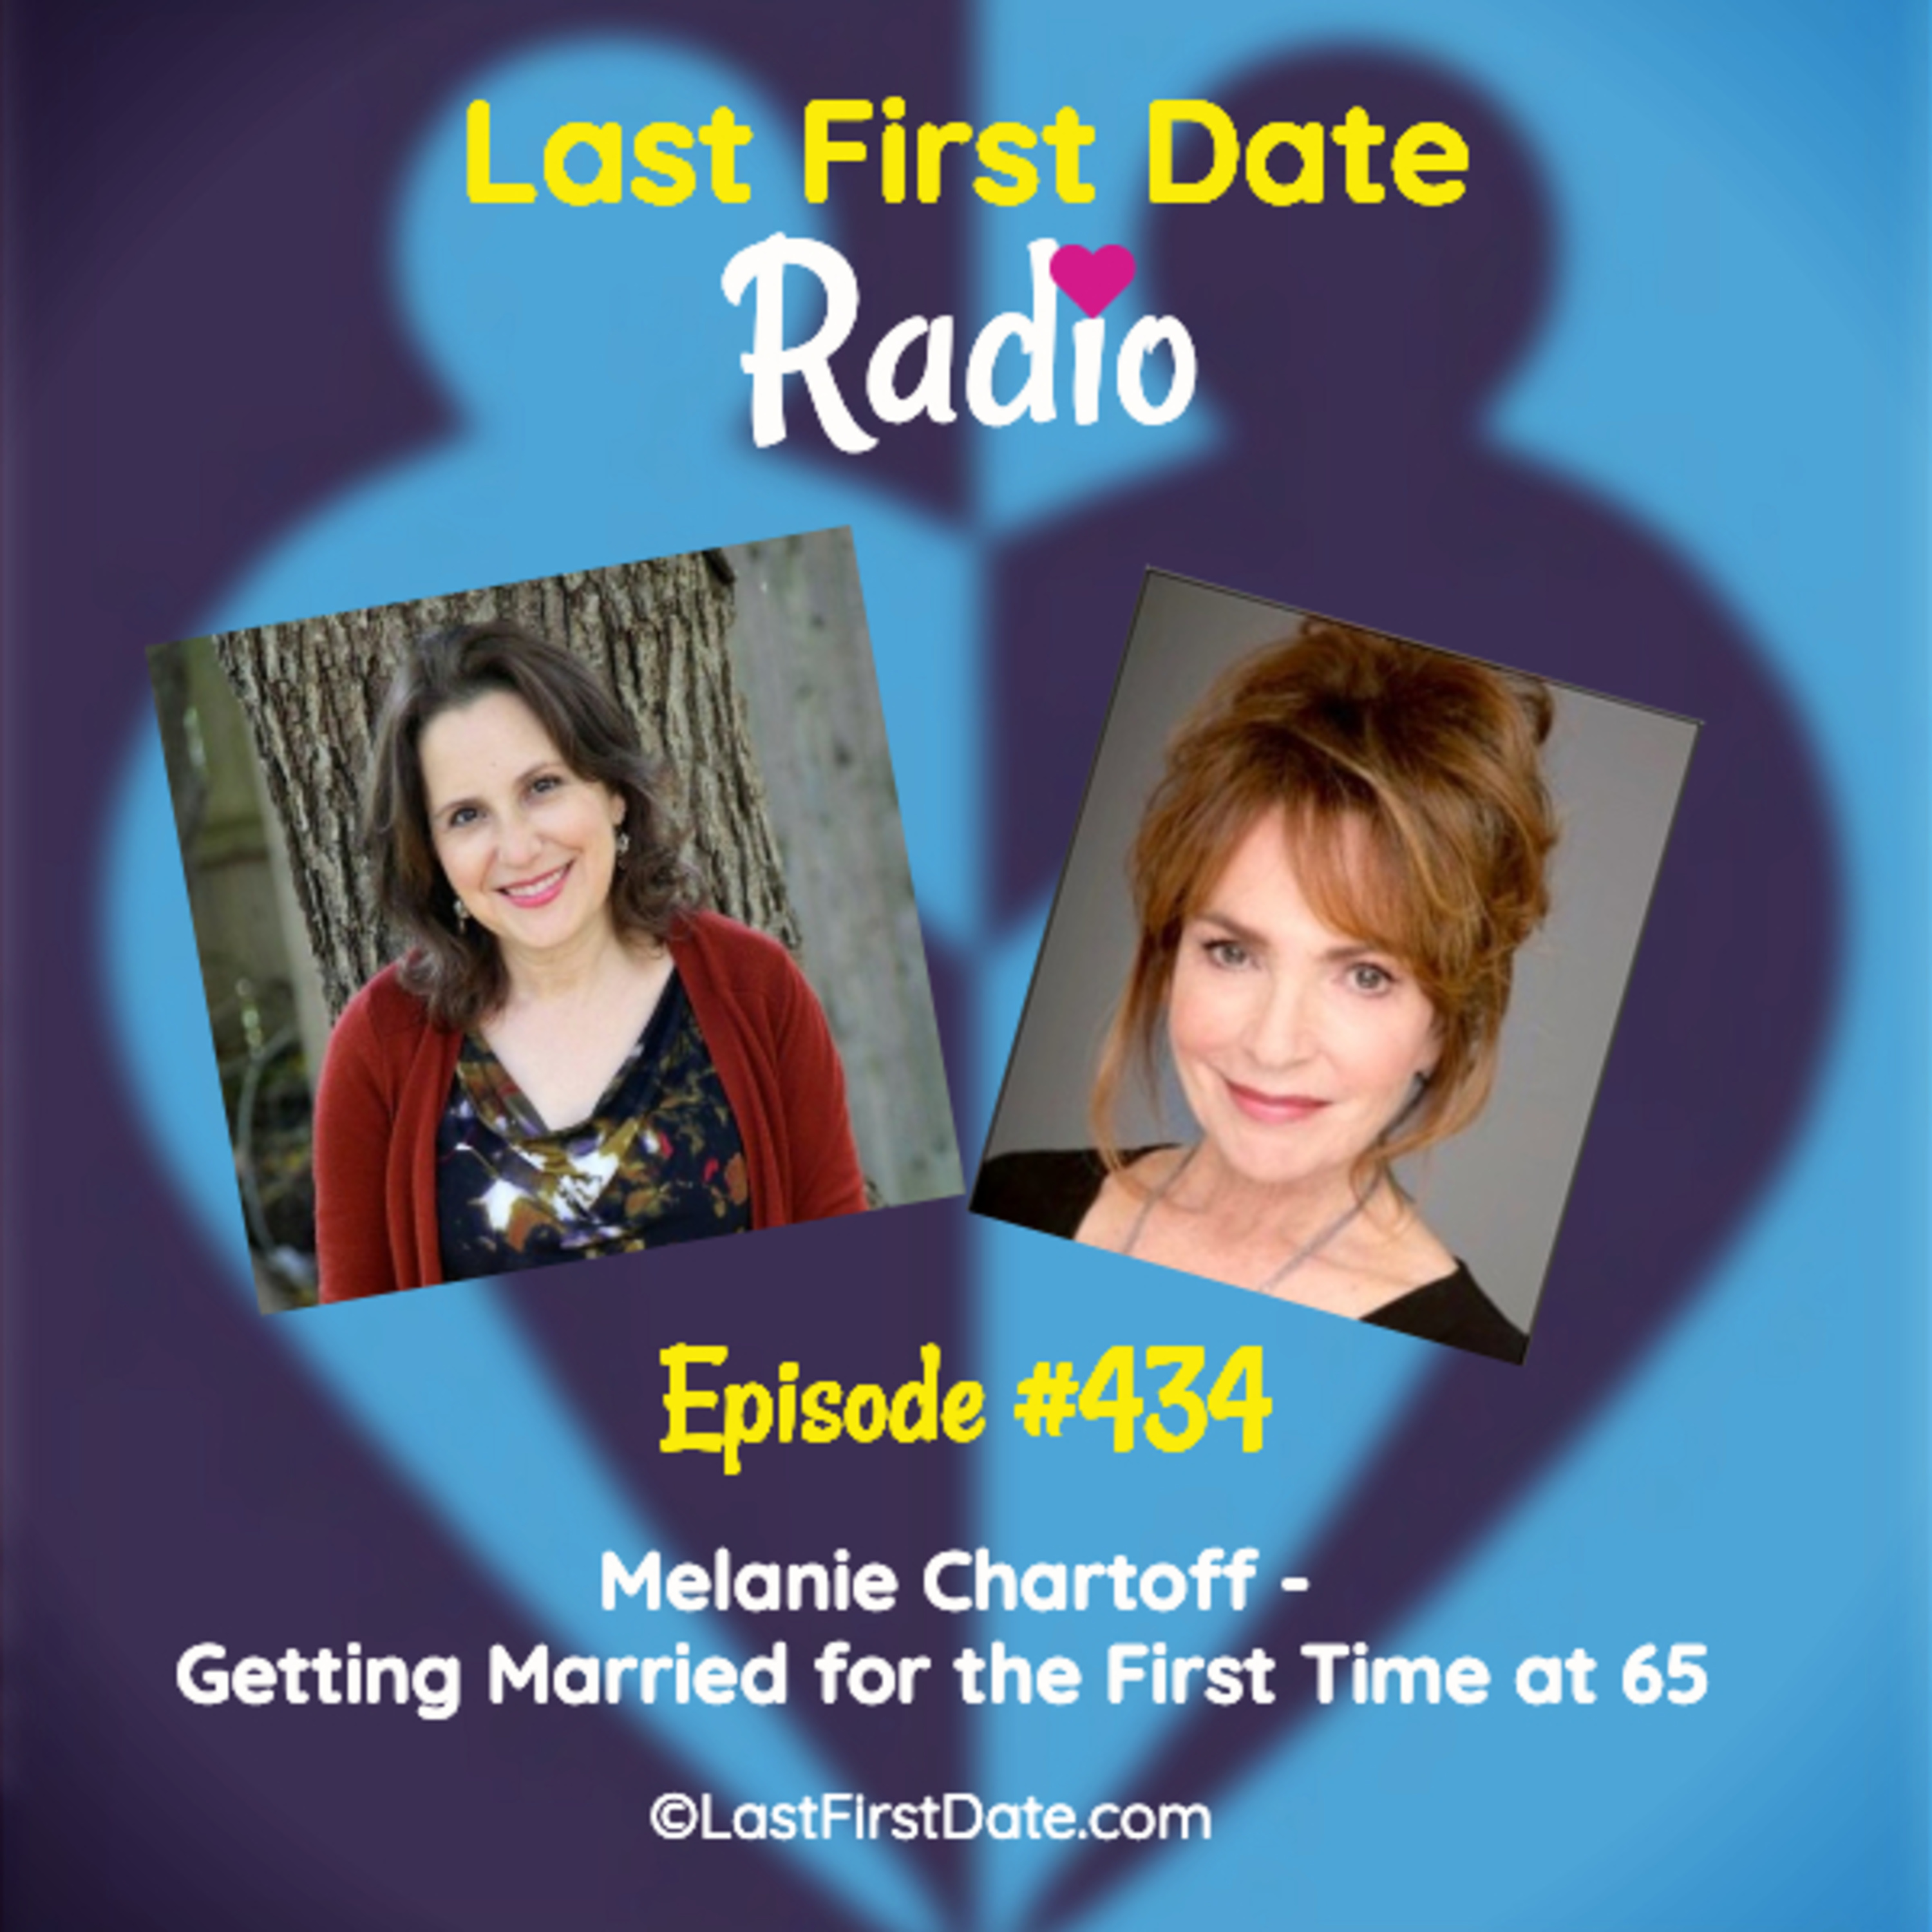 Last First Date Radio - EP 434: Melanie Chartoff - Getting Married for the First Time at 65